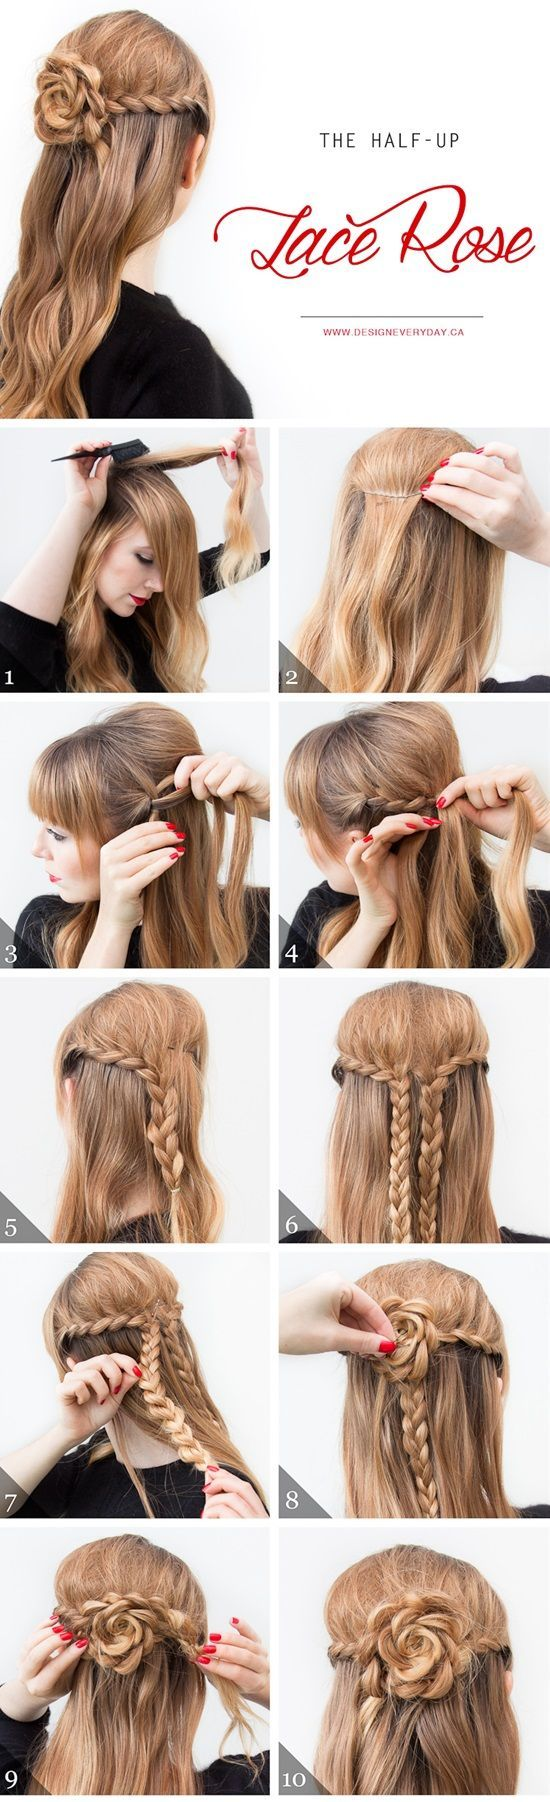 14 bold and unique hairstyle tutorials that you can do at home